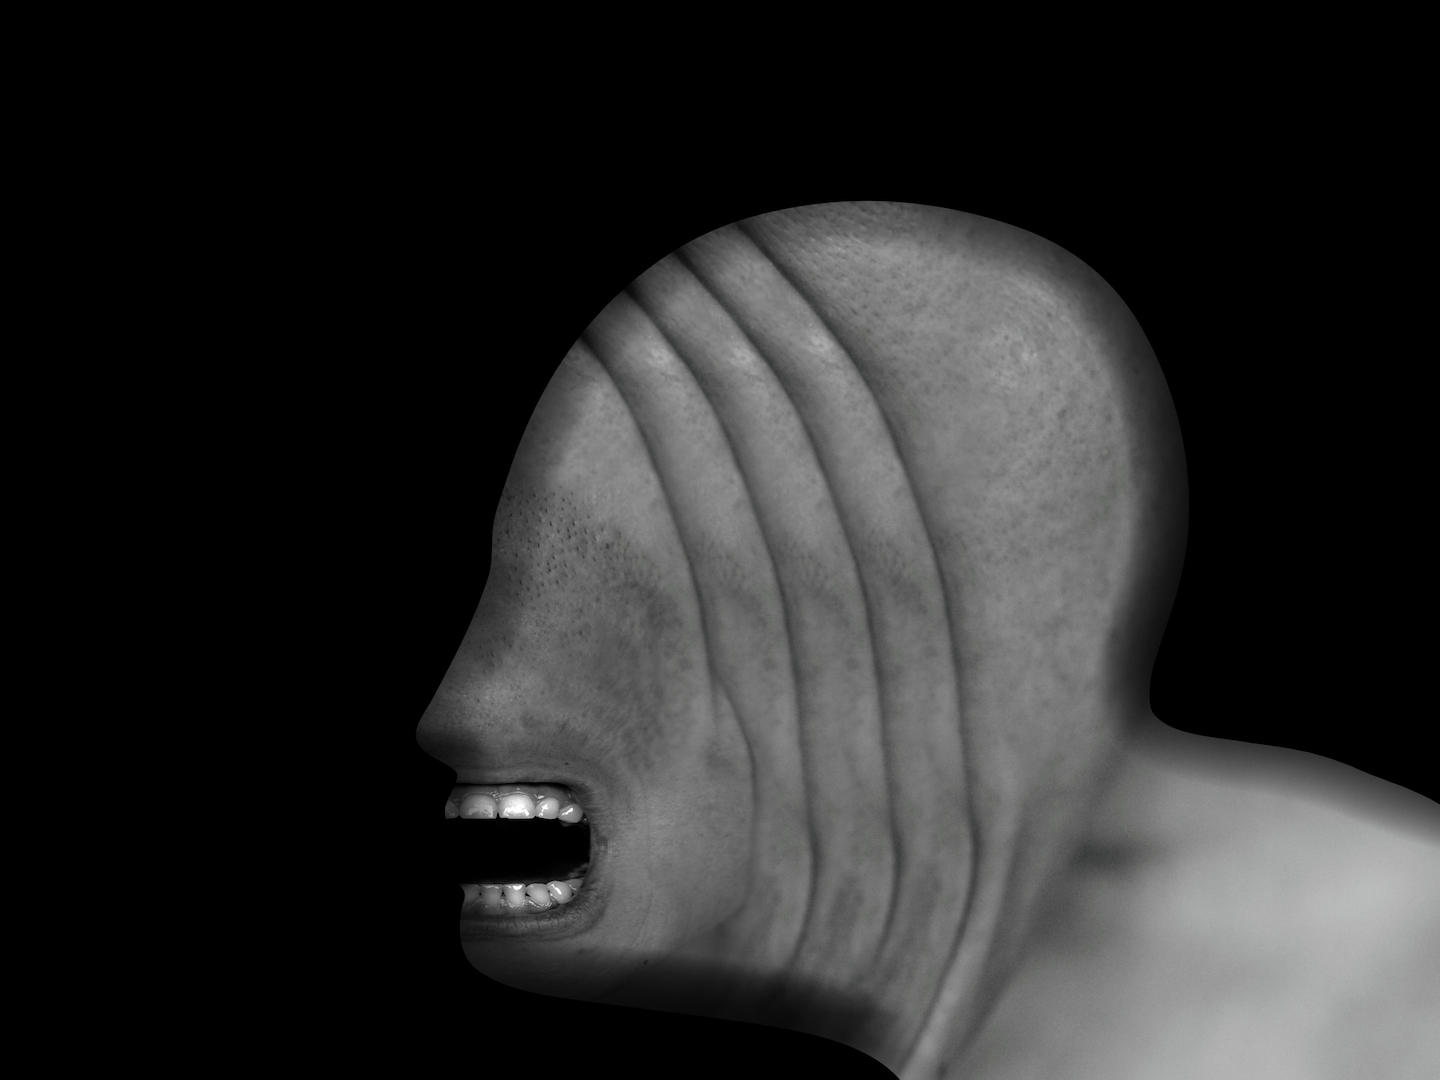 Creepy abstract image of a human profile with teeth exposed but no other facial features, against a black background.